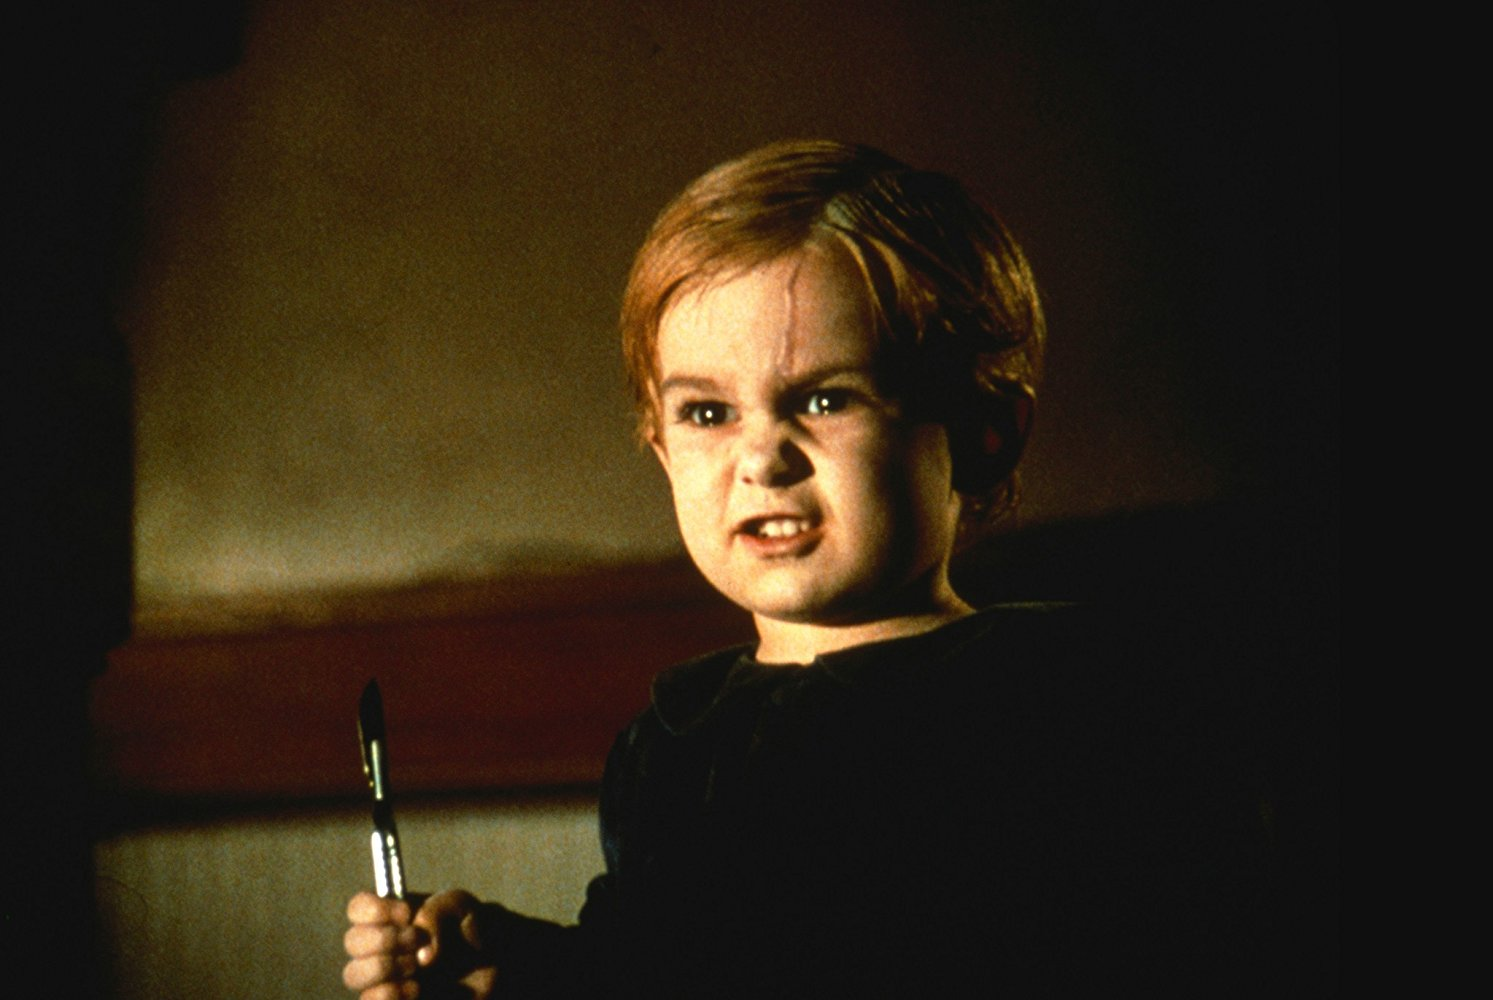 Mike Hughes as Gage in Pet Semetary (1989)